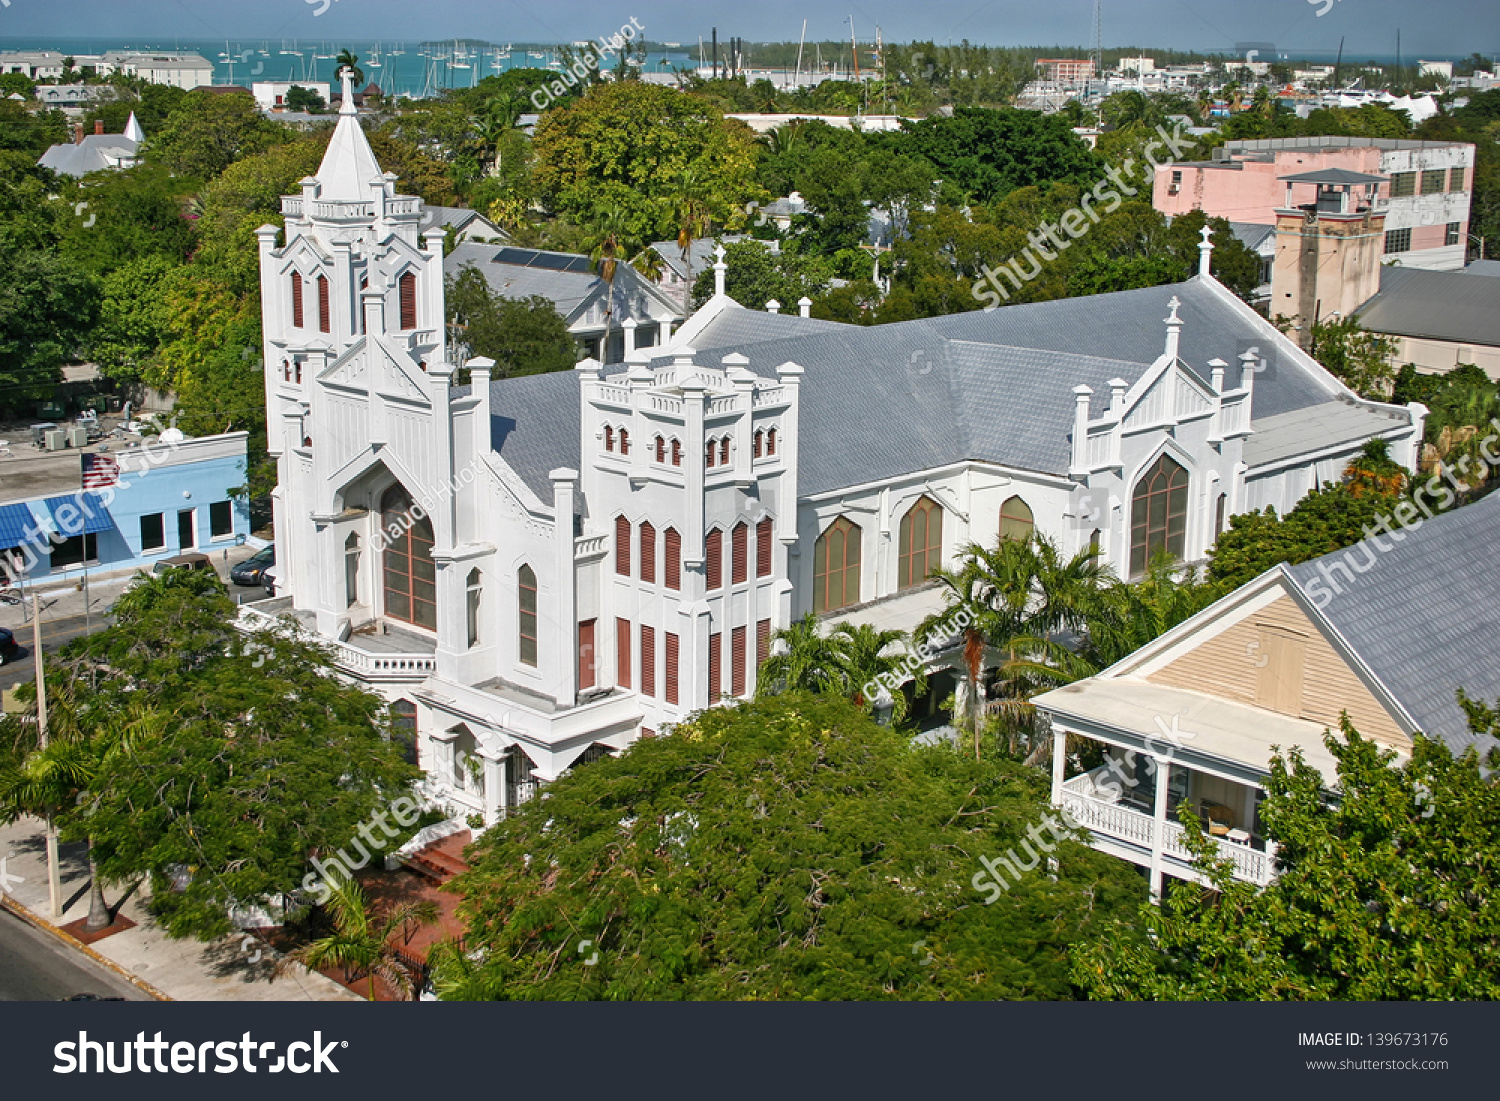 St. Paul's Episcopal Church in Key West, Florida, USA